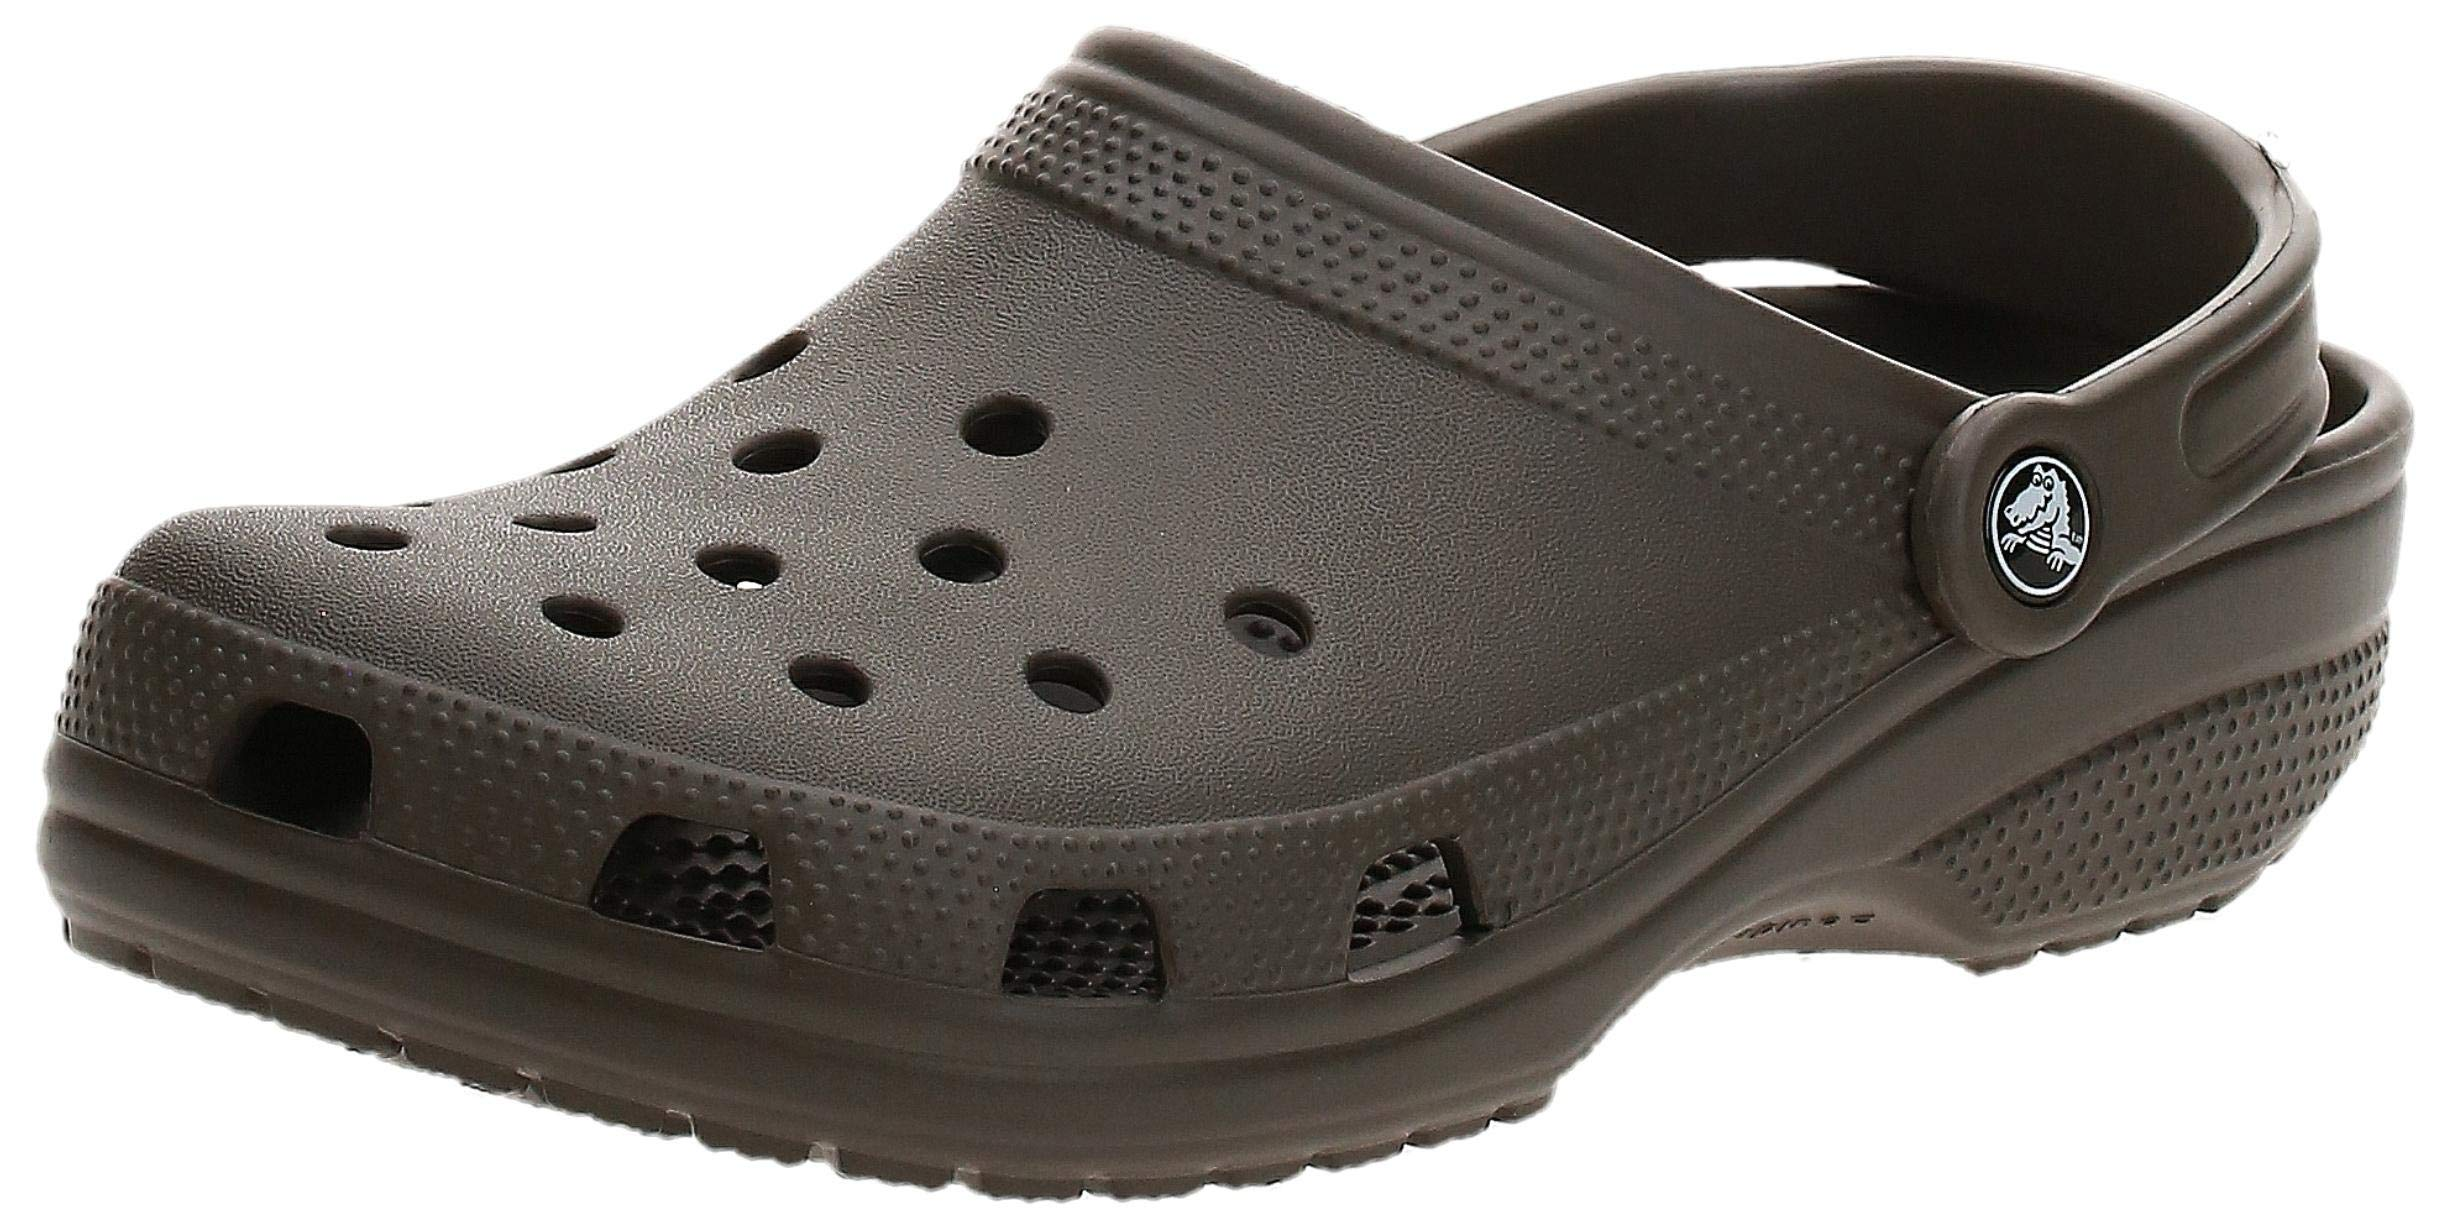 Mens and Womens Classic Clog | Water Shoes | Comfortable Slip On Shoes